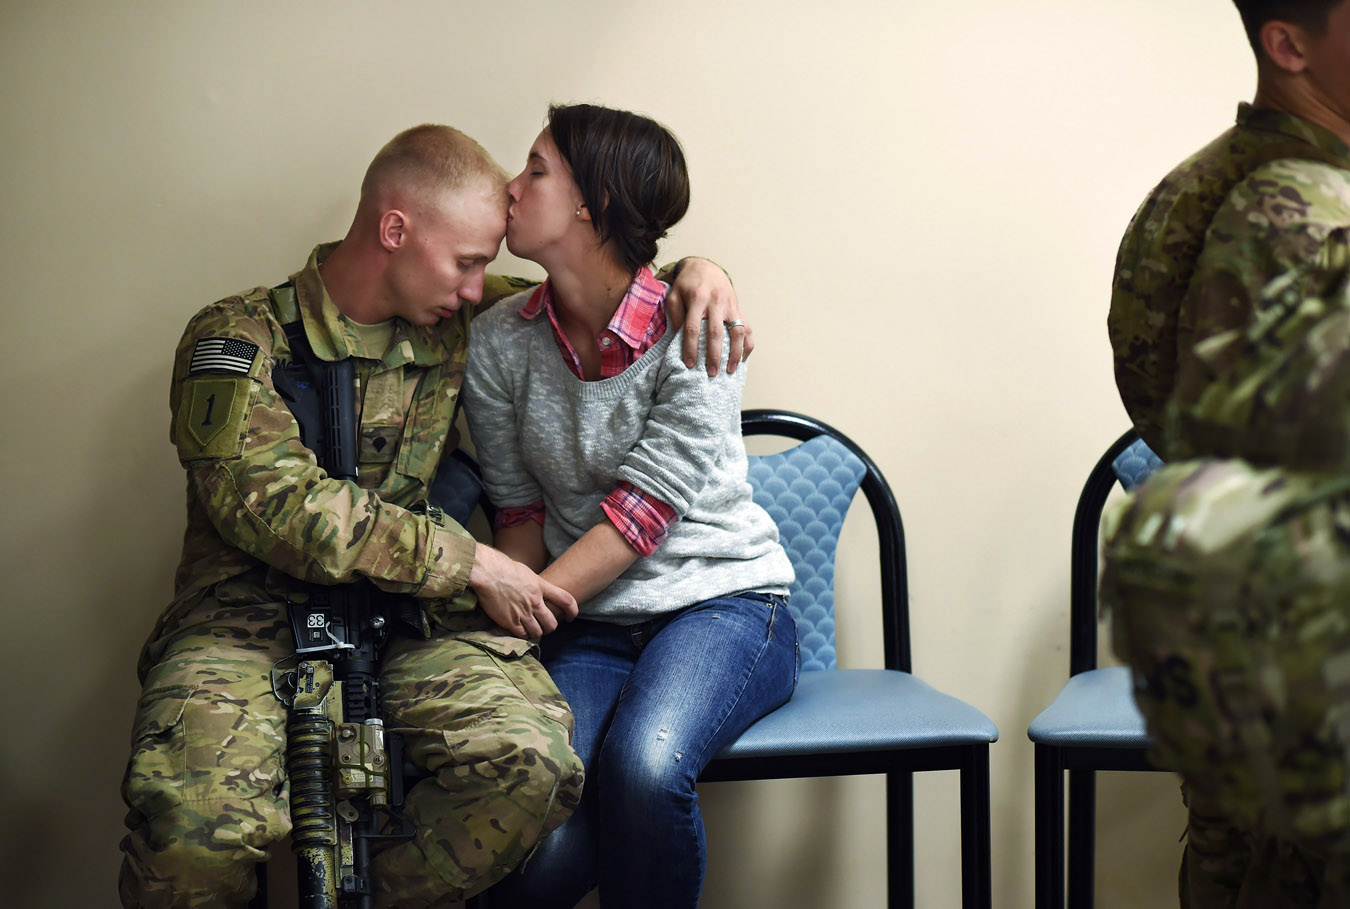 SPC Caleb McKinnon embraces his wife, Savannah McKinnon as he and others prepare to be deployed to Afghanistan from Fort Campbell on Sunday November 09, 2014 in Fort Campbell, KY.  (Photo by Matt McClain/ The Washington Post)